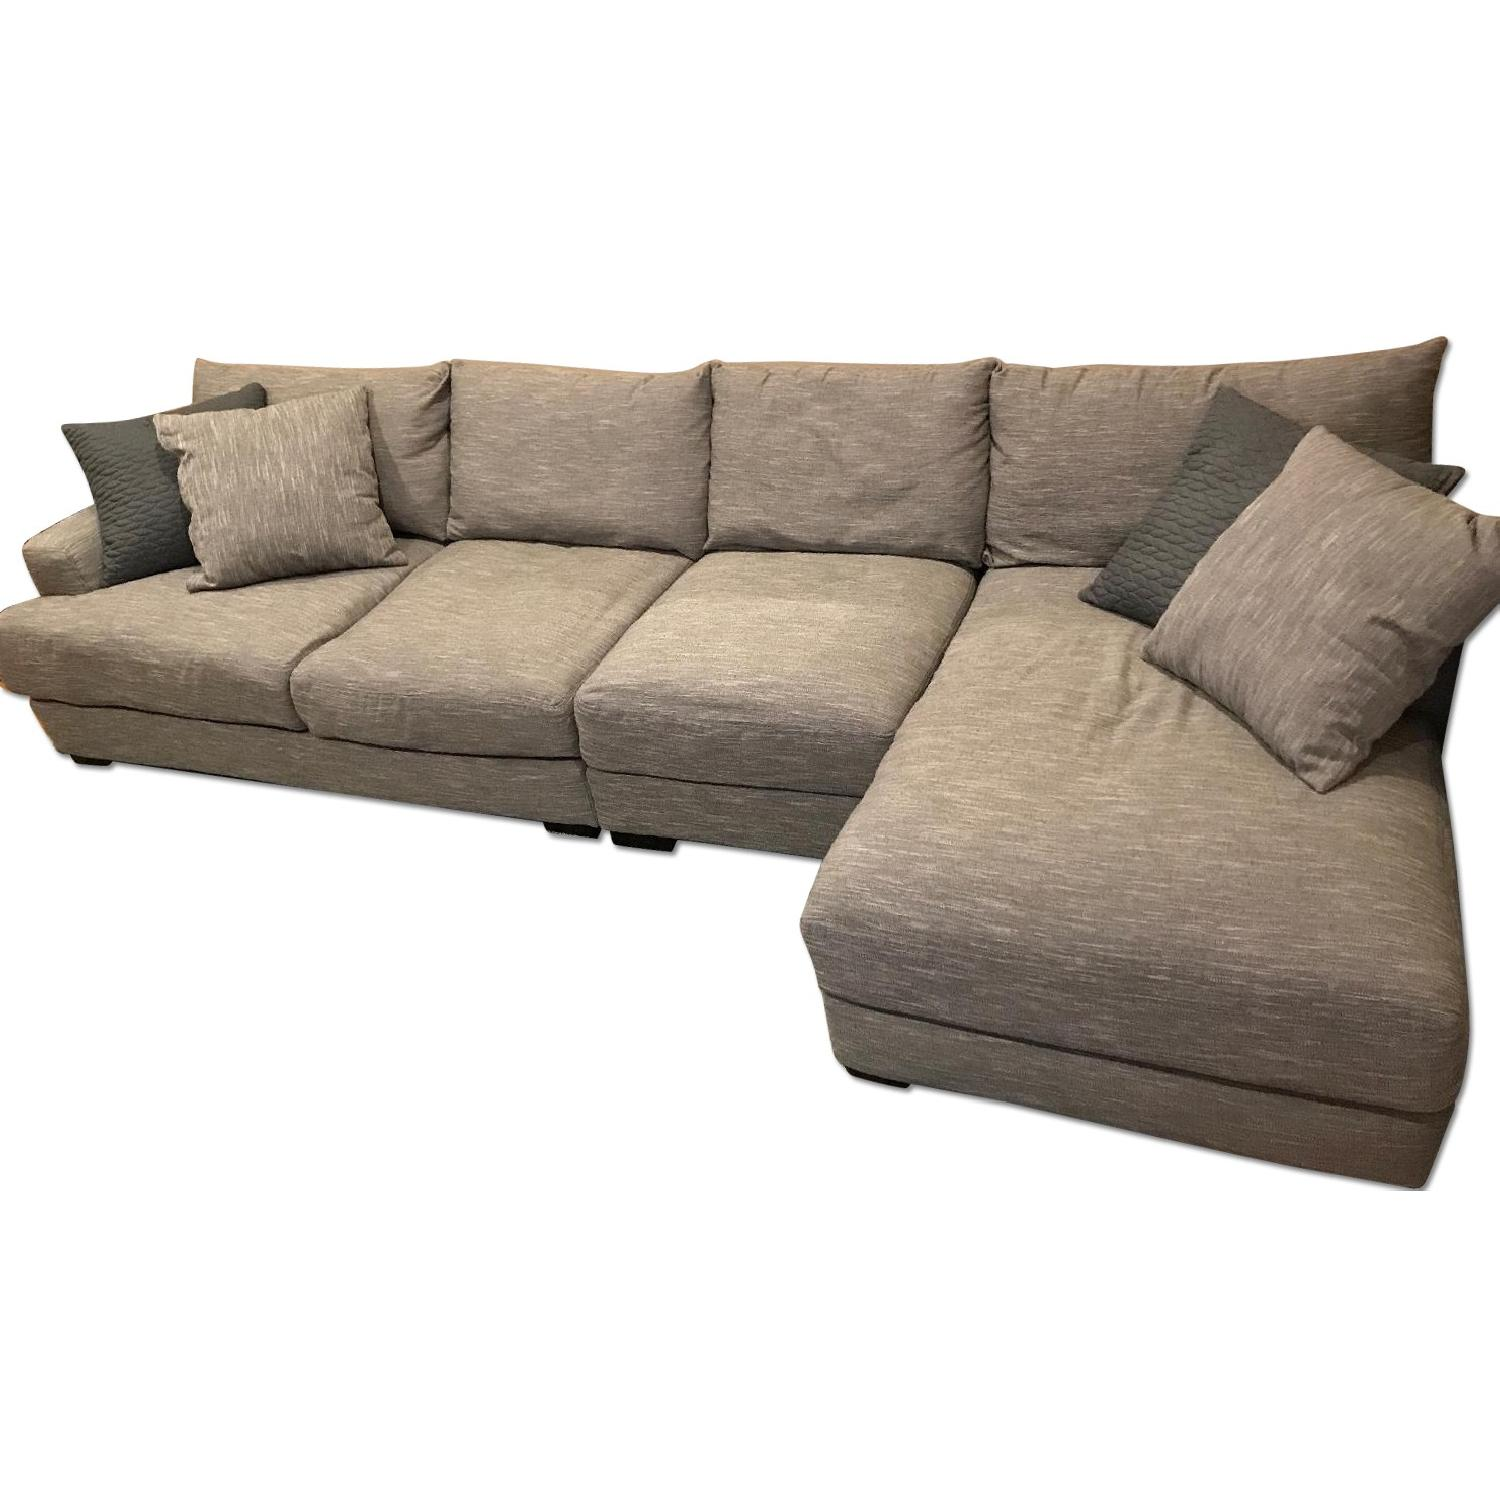 Raymour & Flanigan Leighton 3 Piece Chaise Sectional Sofa